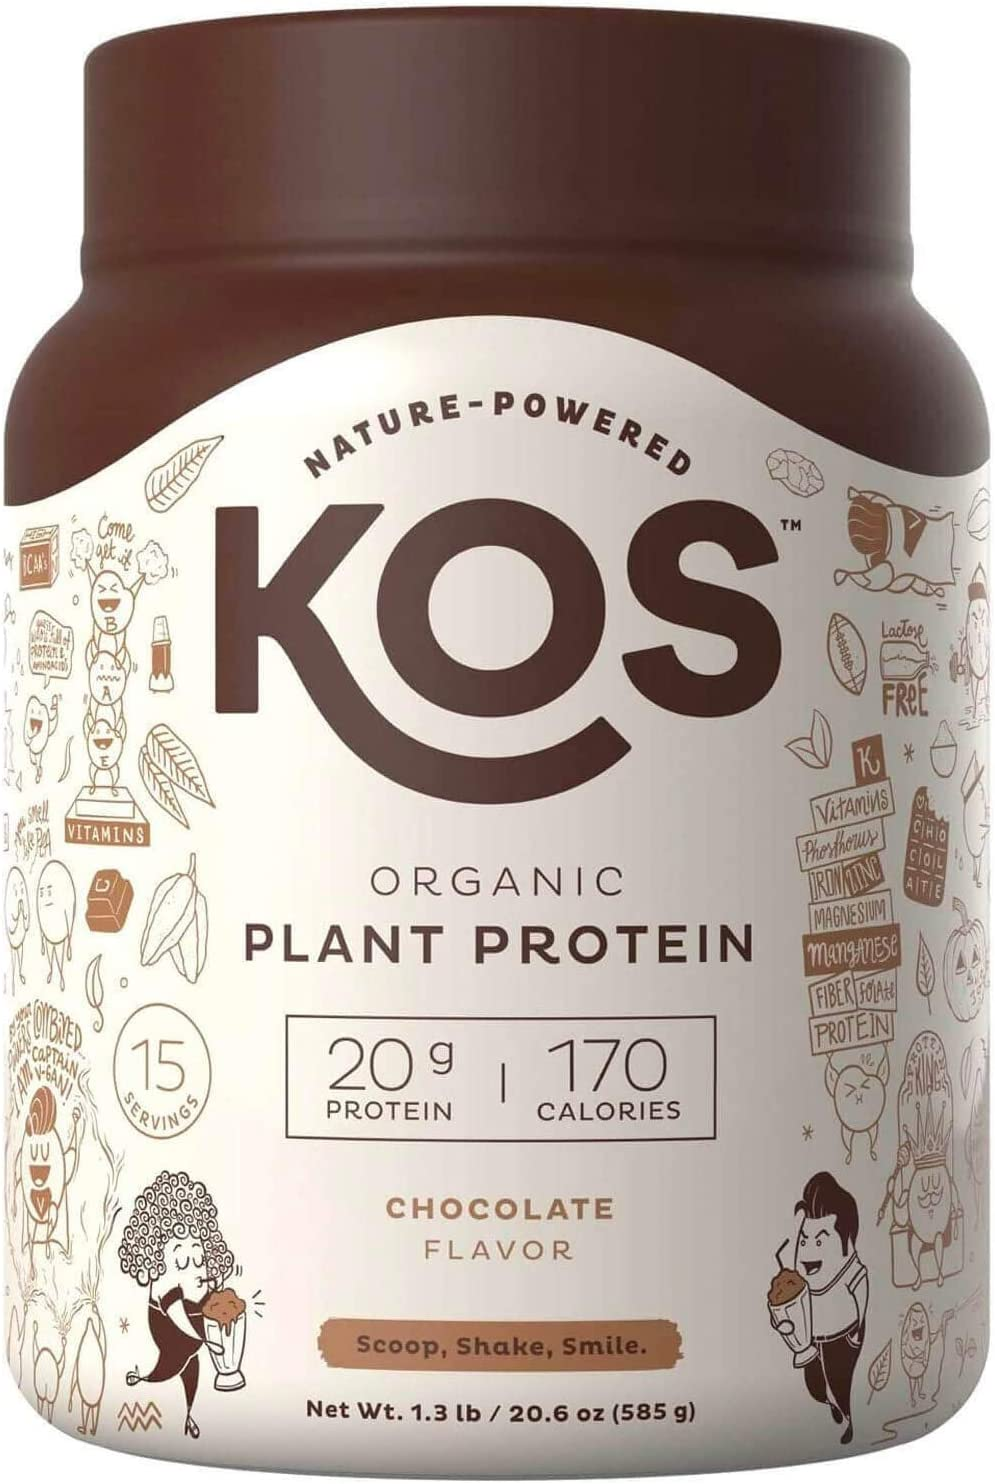 KOS Organic Plant Based Protein Powder – Delicious Chocolate Protein Powder – Gluten, Dairy Soy Free Vegan Protein Powder – Ideal for Meal Replacement Shakes for Weight Loss -1.3 Pounds, 15 Servings